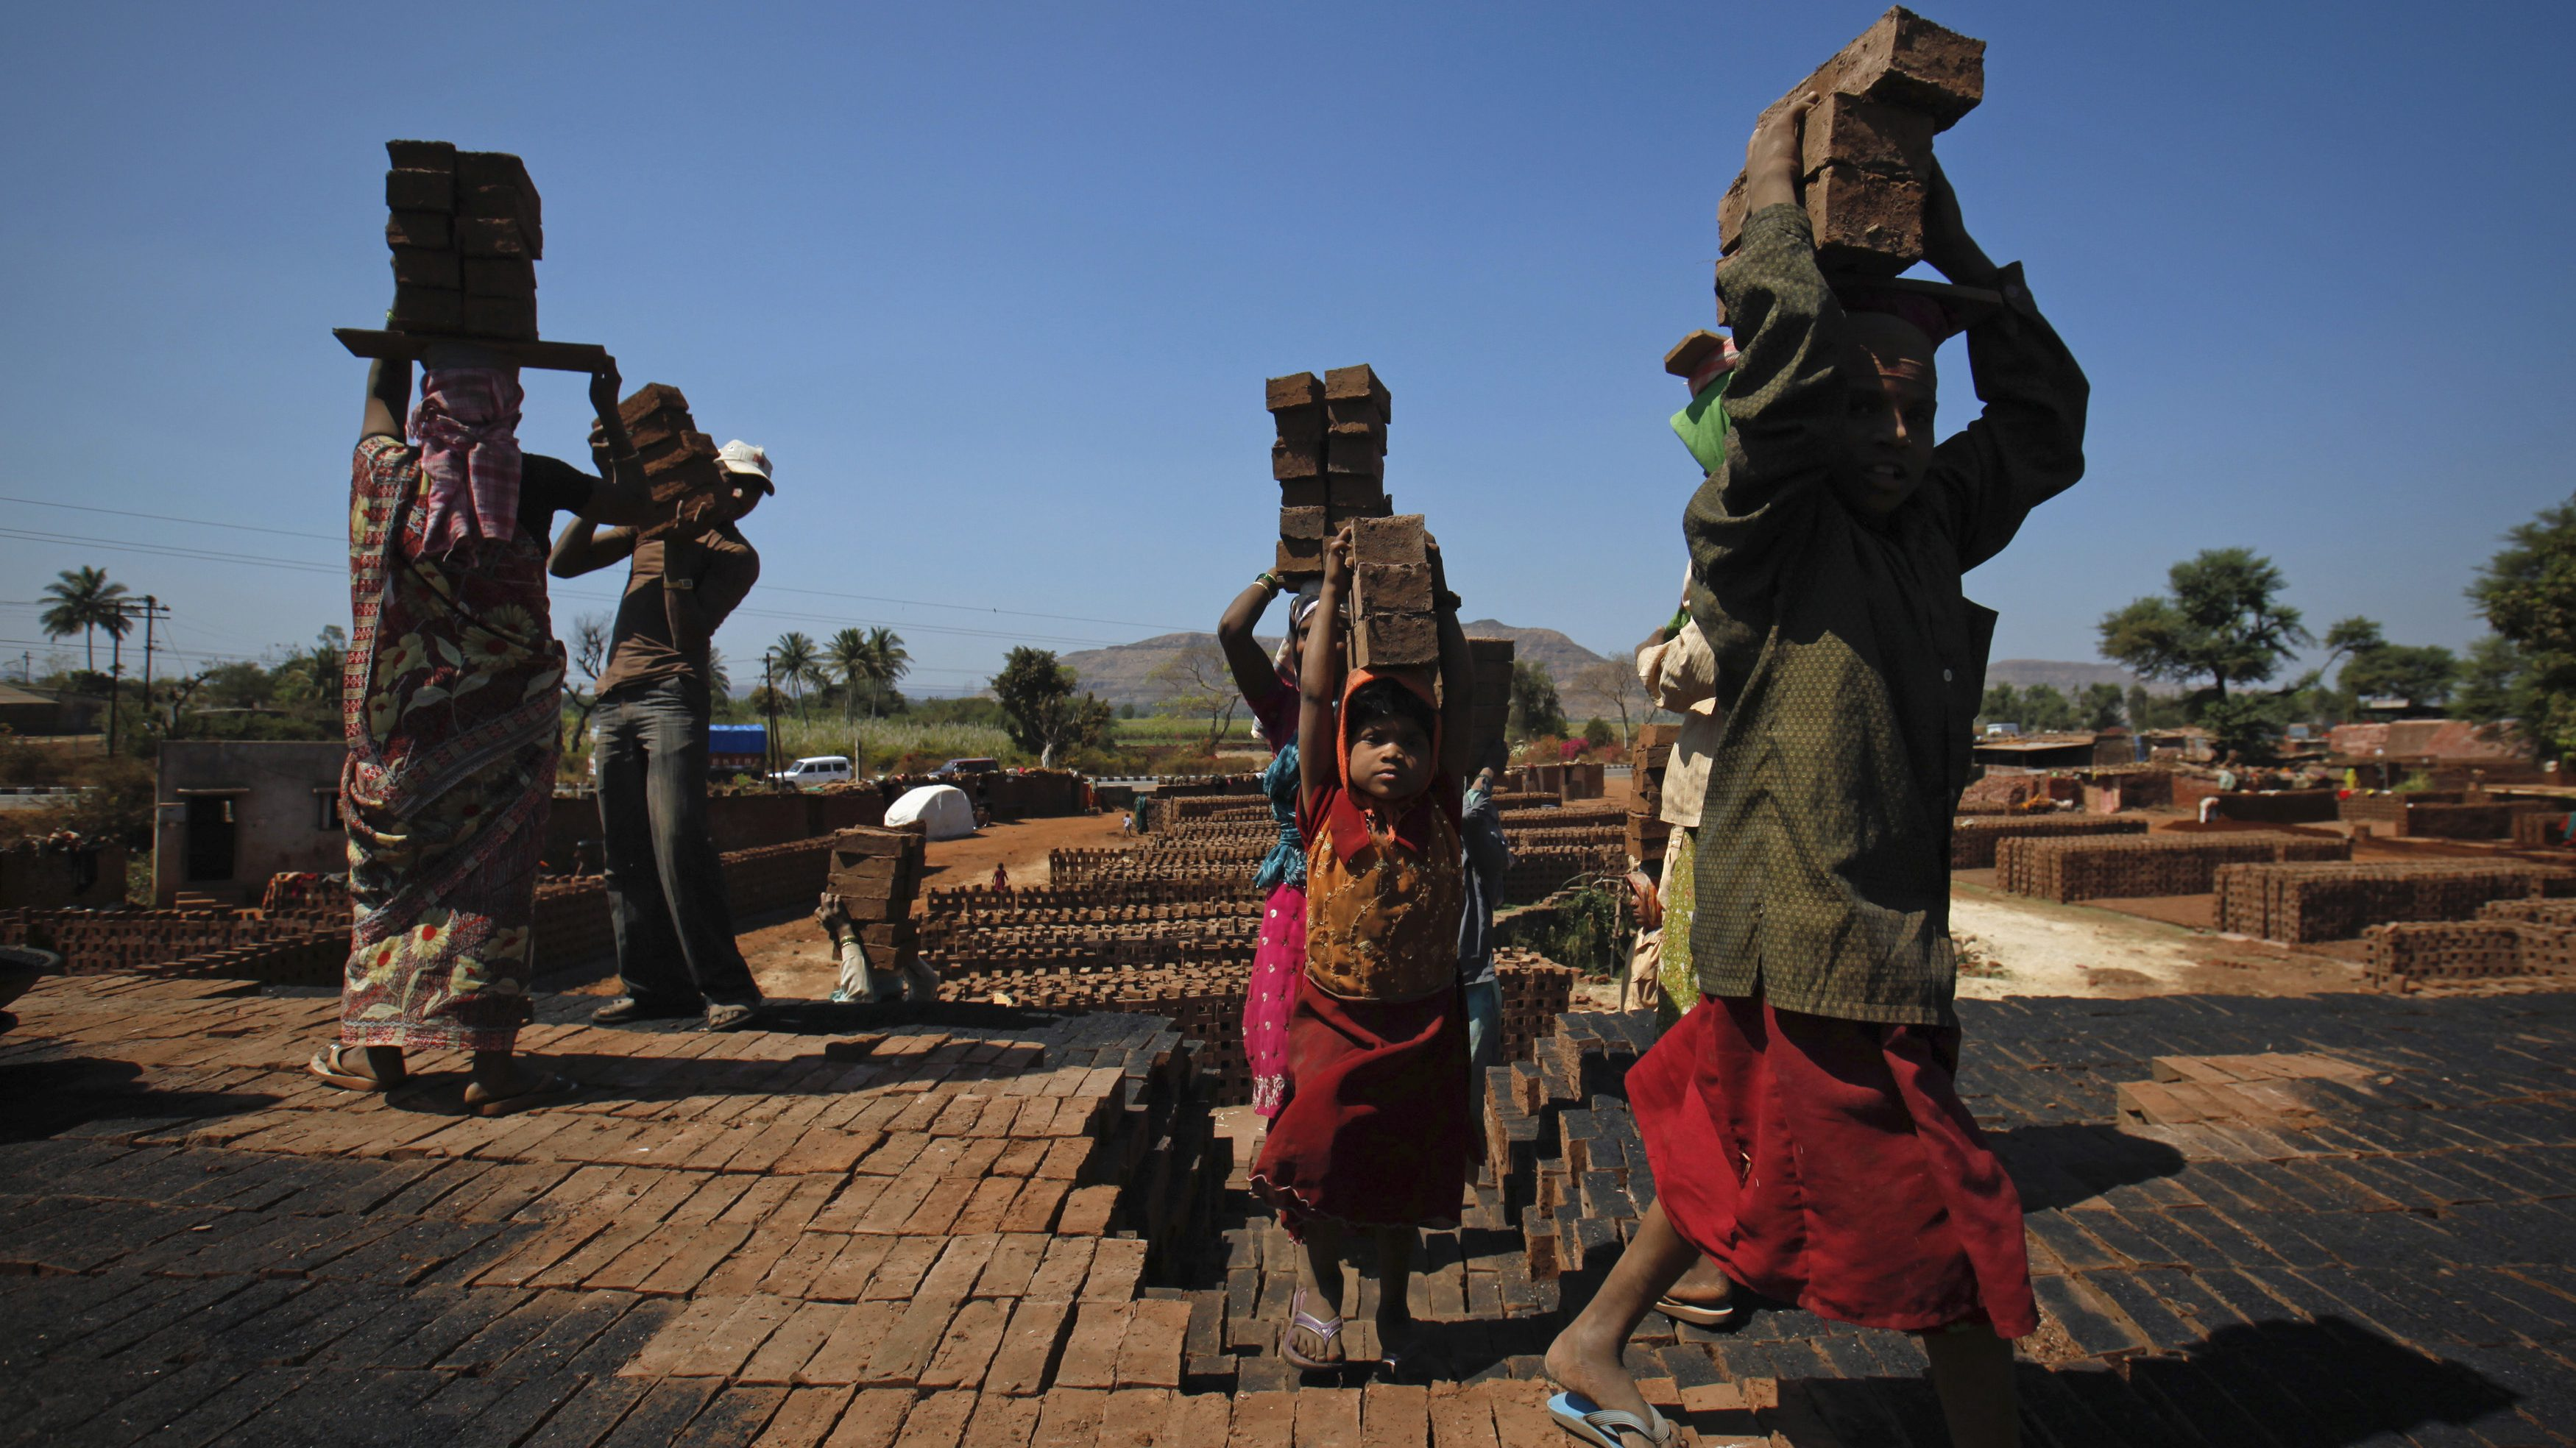 Girls carry bricks to be baked in a kiln at a brickyard on the outskirts of Karad in Satara district, about 396km (246 miles) south of Mumbai February 13, 2012. REUTERS/Danish Siddiqui (INDIA - Tags: SOCIETY) - RTR2XRWK